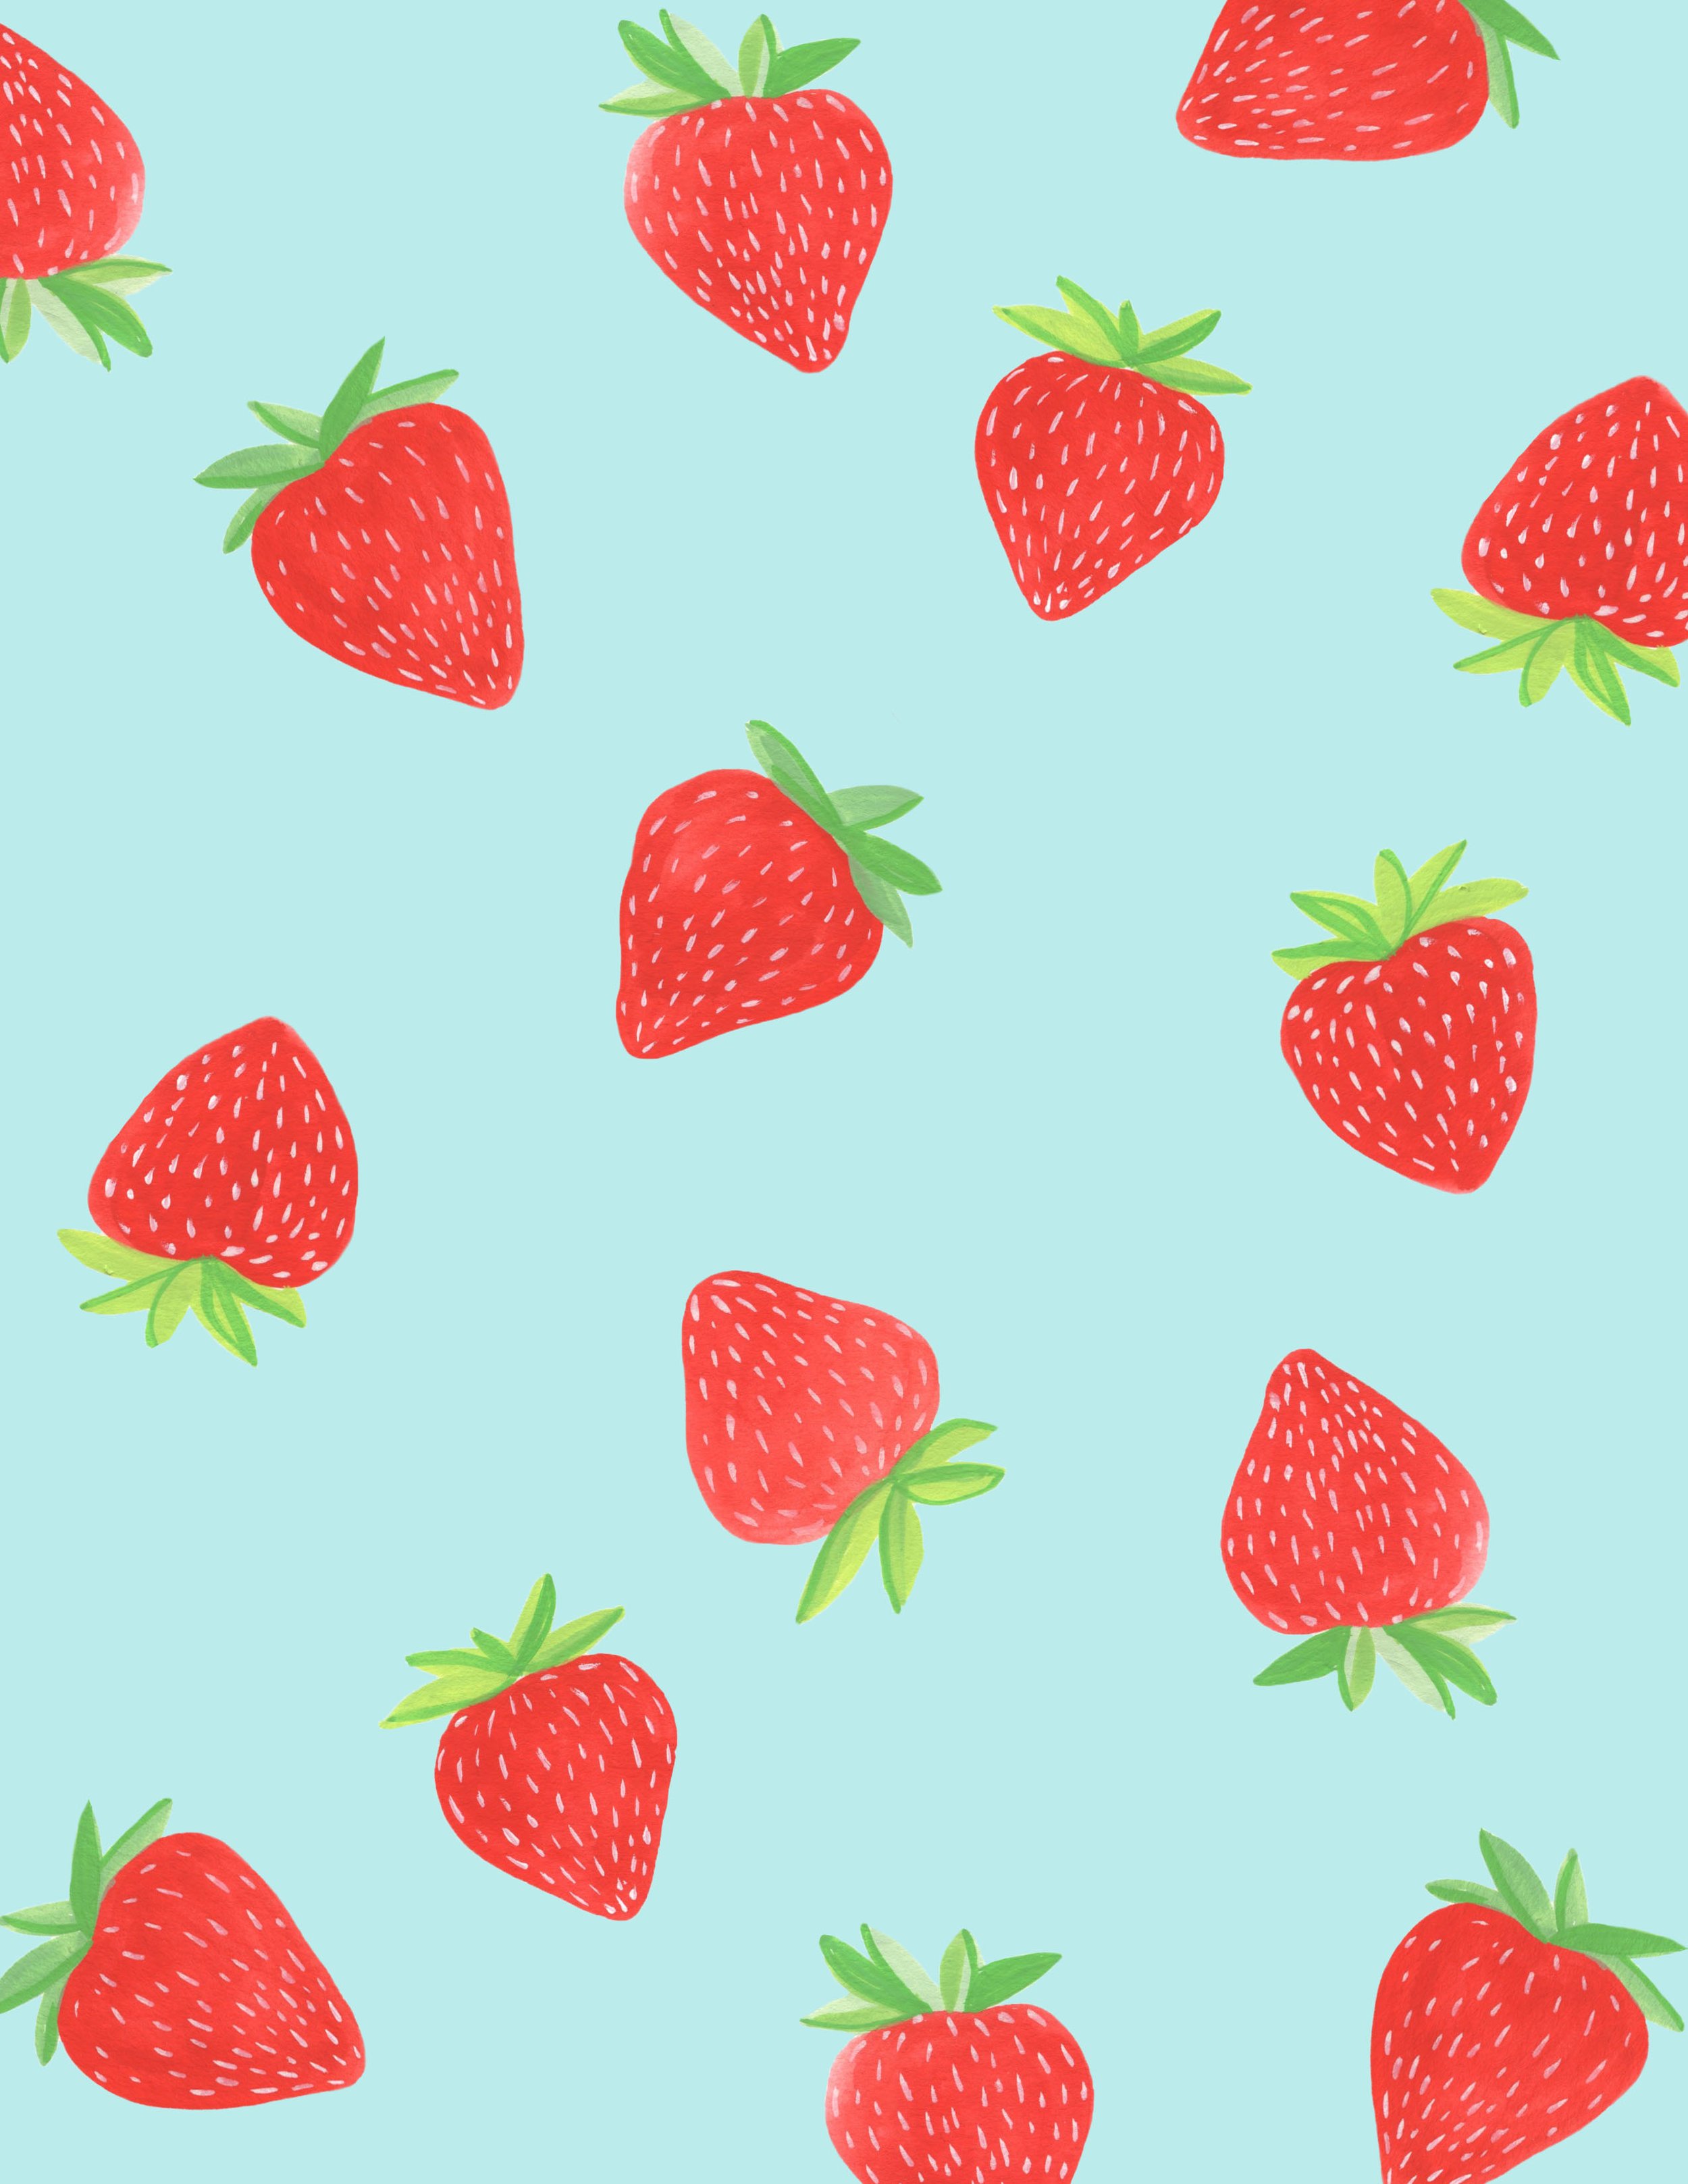 Cellrare-strawberries.jpg